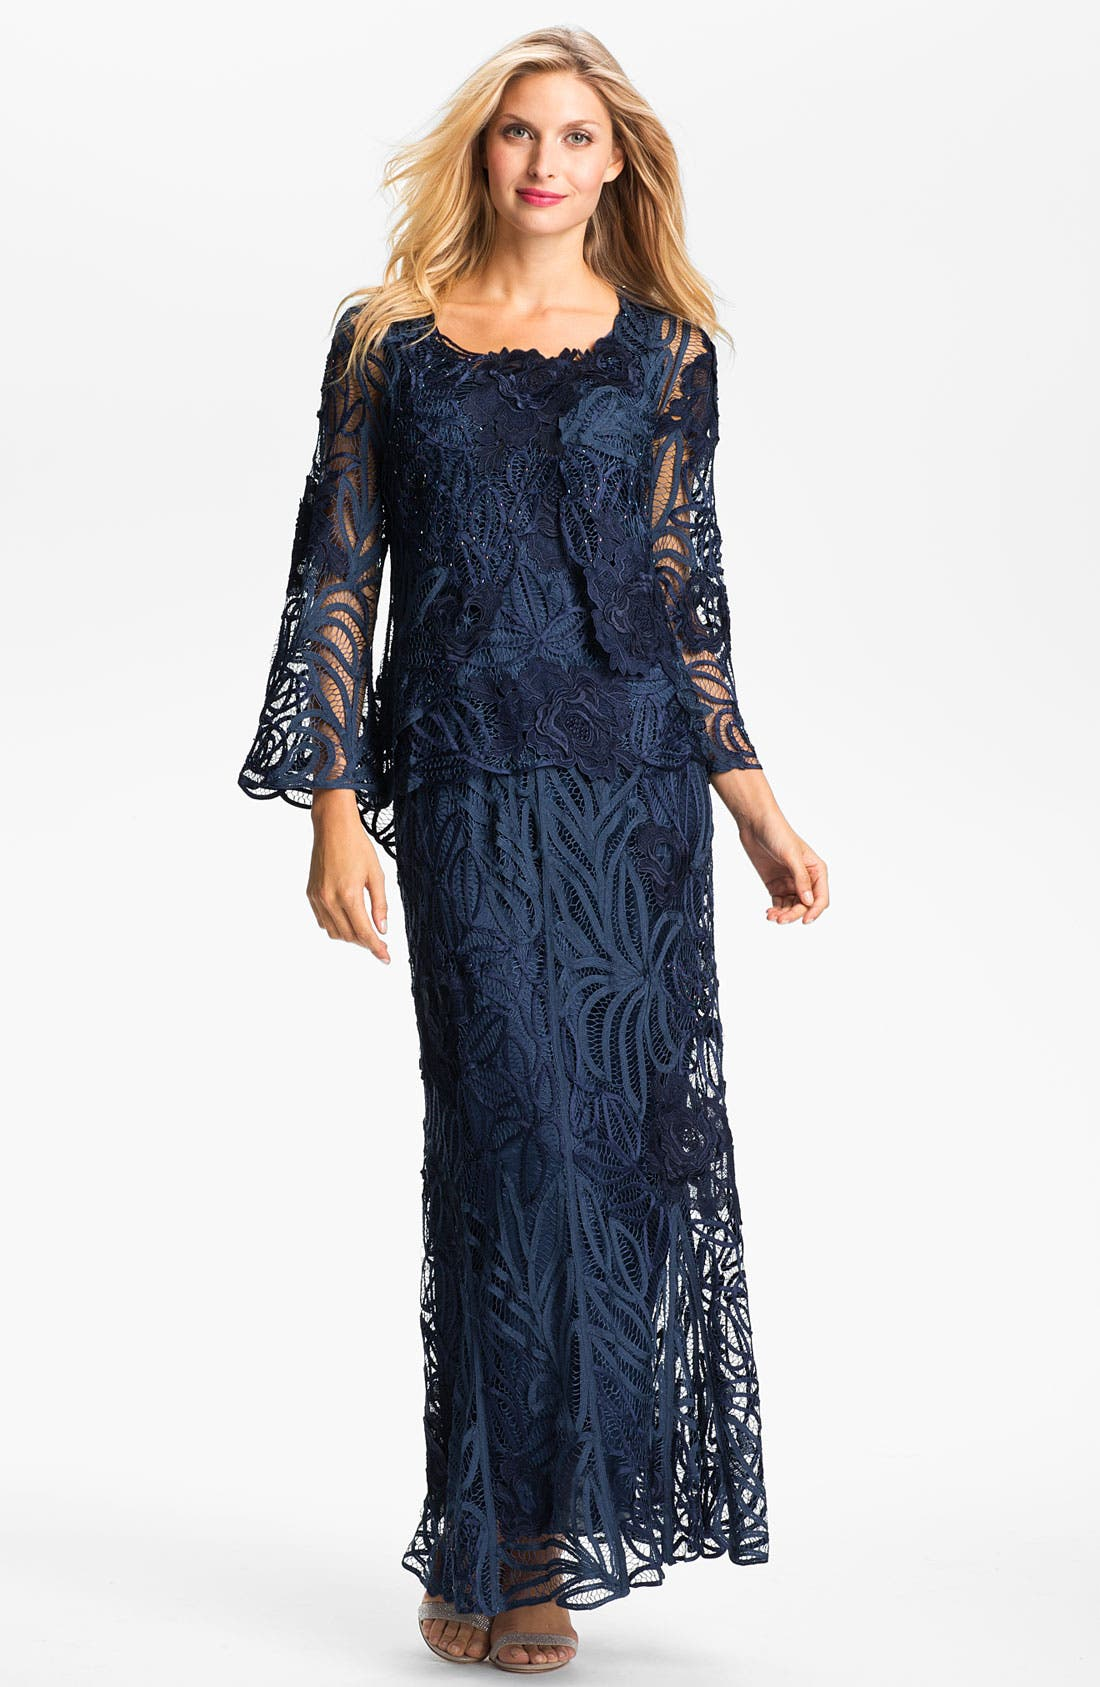 Alternate Image 1 Selected - Soulmates Three Piece Embroidered Jacket & Skirt Set